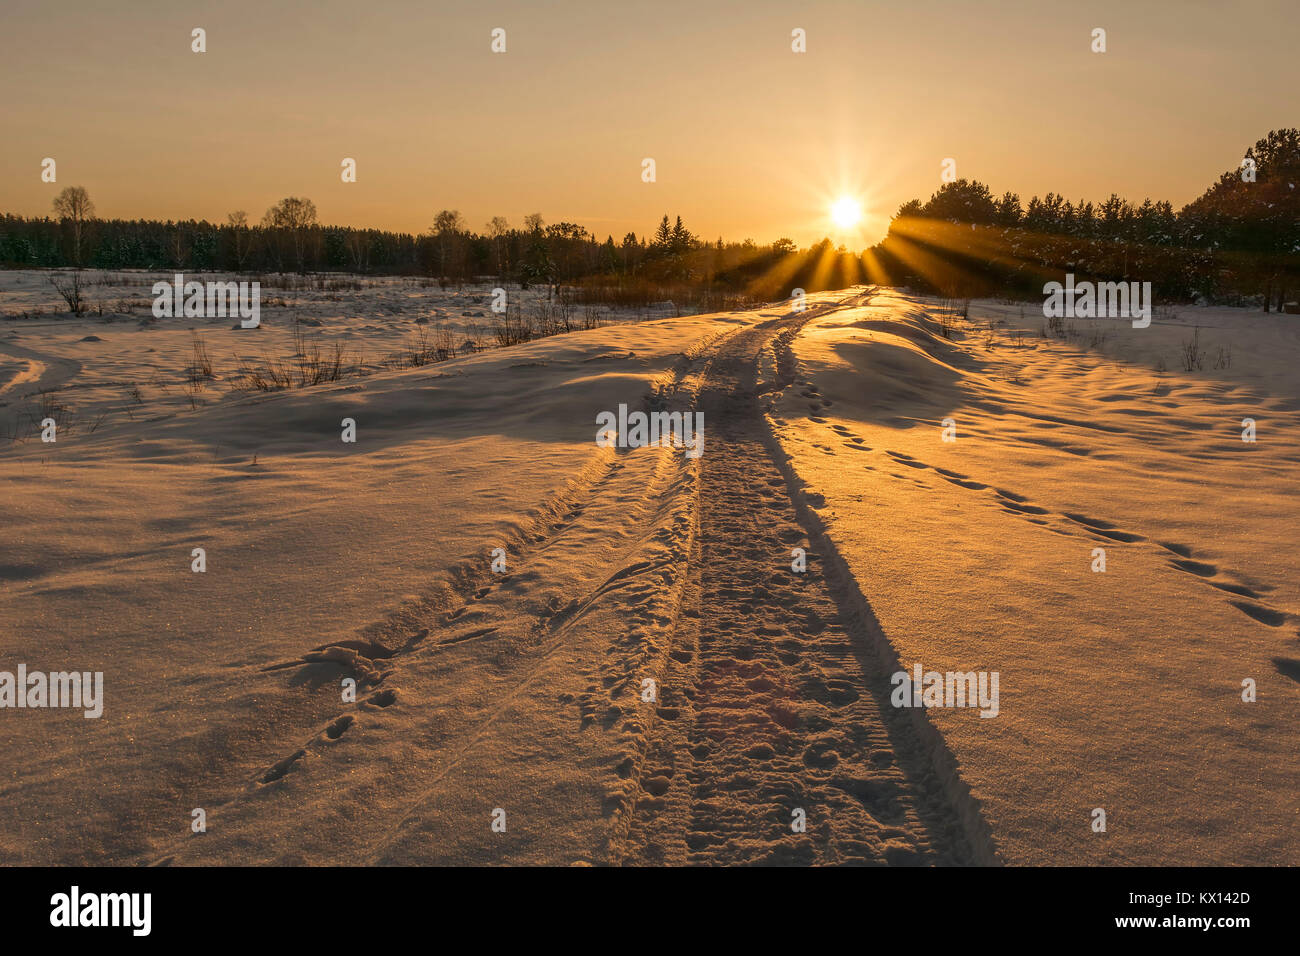 Lonely trail from snowmobile disappearing into distance in winter, at sunset. - Stock Image